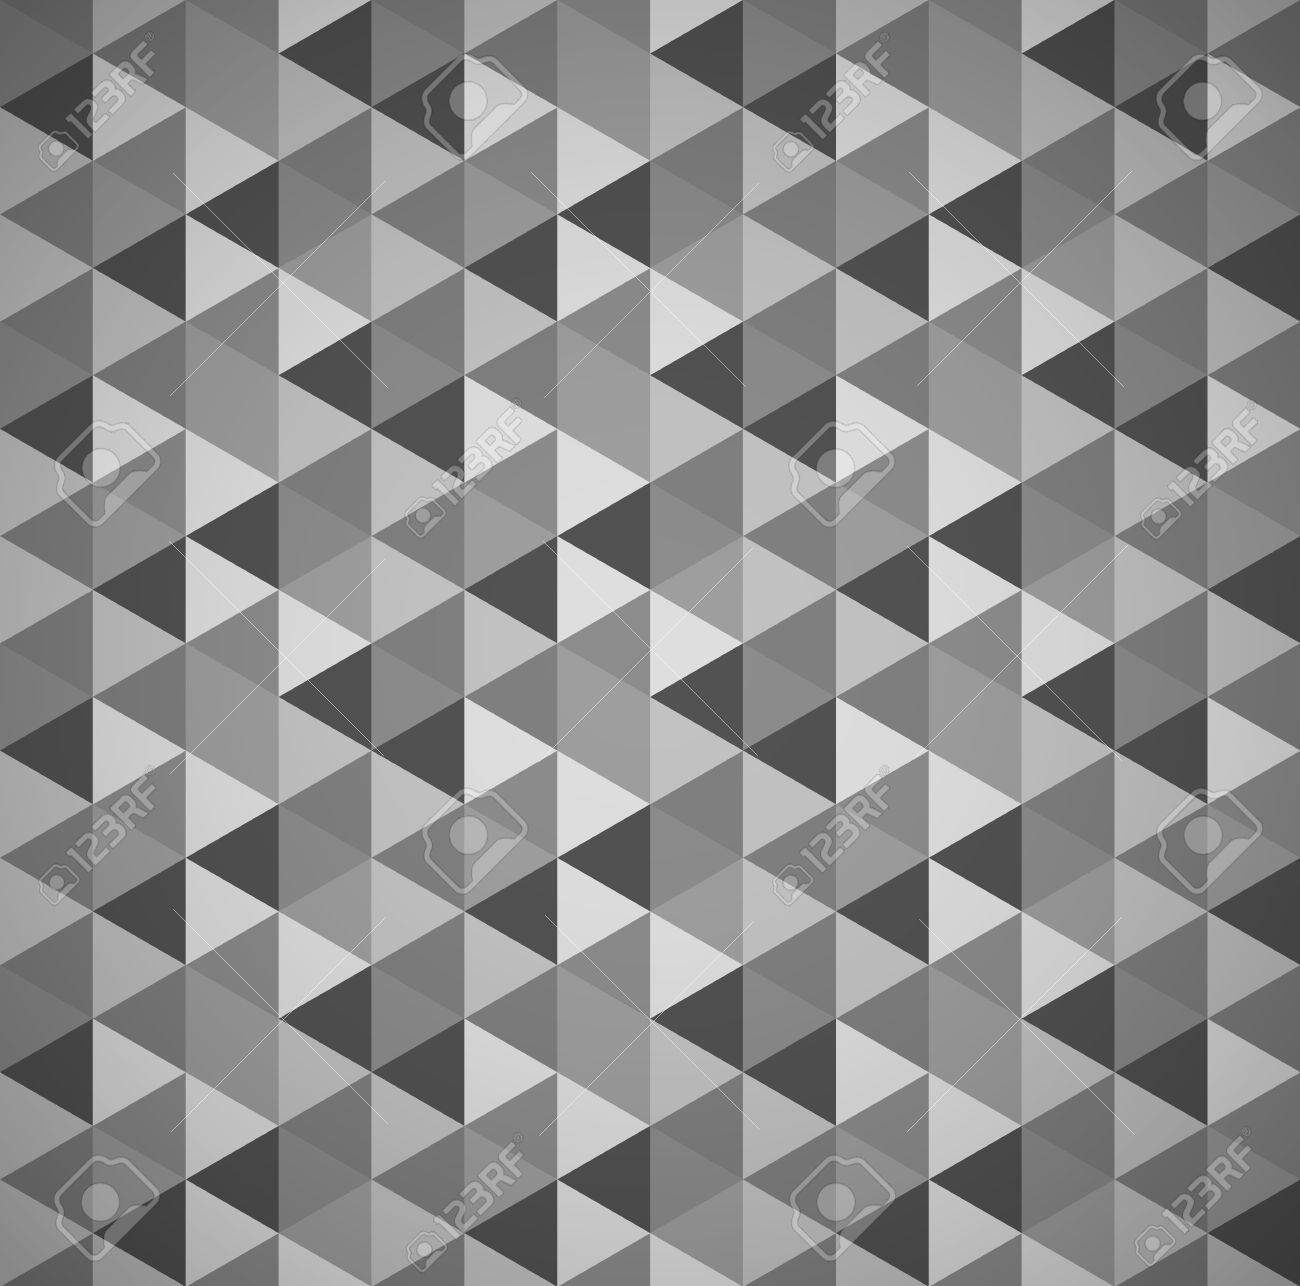 Grayscale mosaic tessellation background with triangles grayscale mosaic tessellation background with triangles seamlessly repeatable stock vector 51225035 dailygadgetfo Images